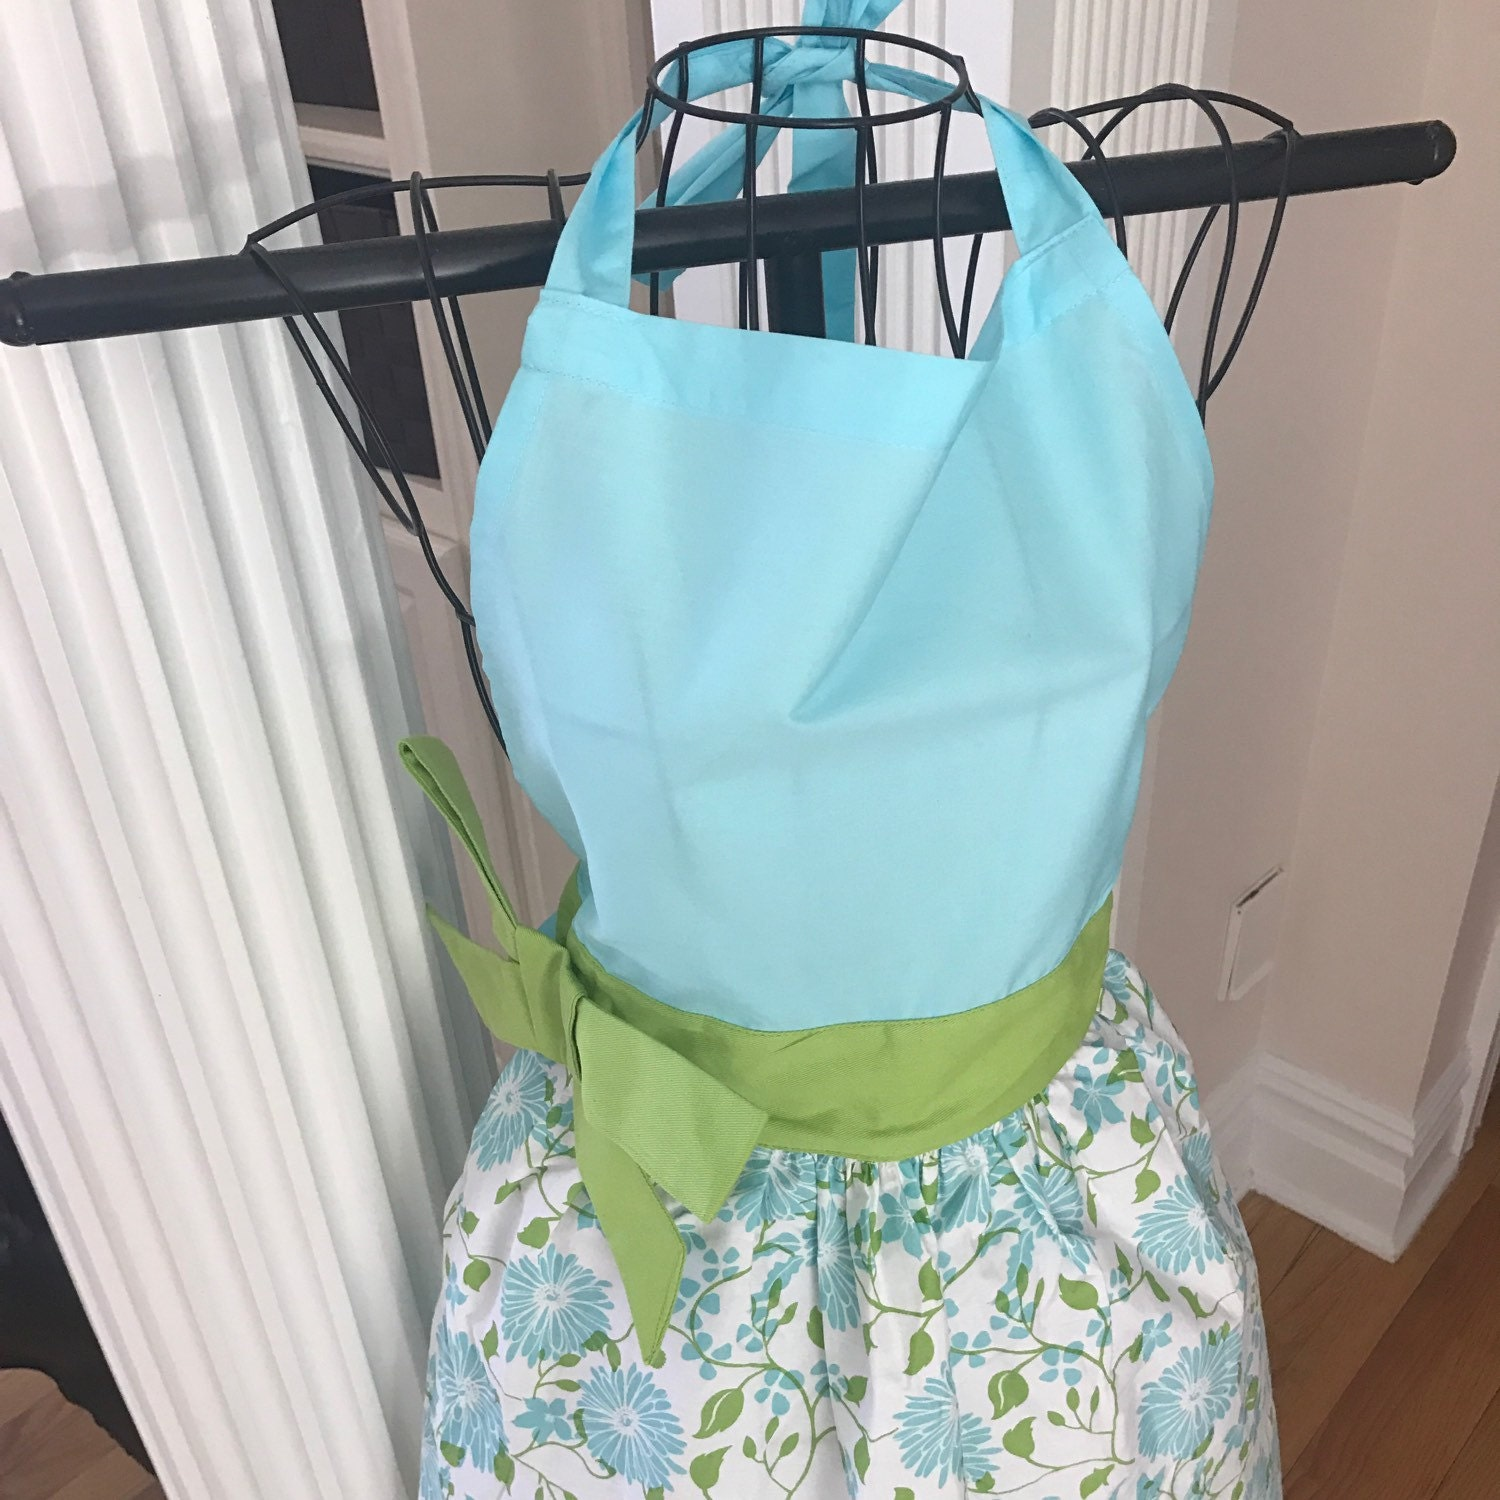 Blue apron gift - Summer Apron Gift Teacher Monogram Kitchen Apron Green Apron Full Apron Blue Apron Embroidered Apron Floral Apron Tiffany